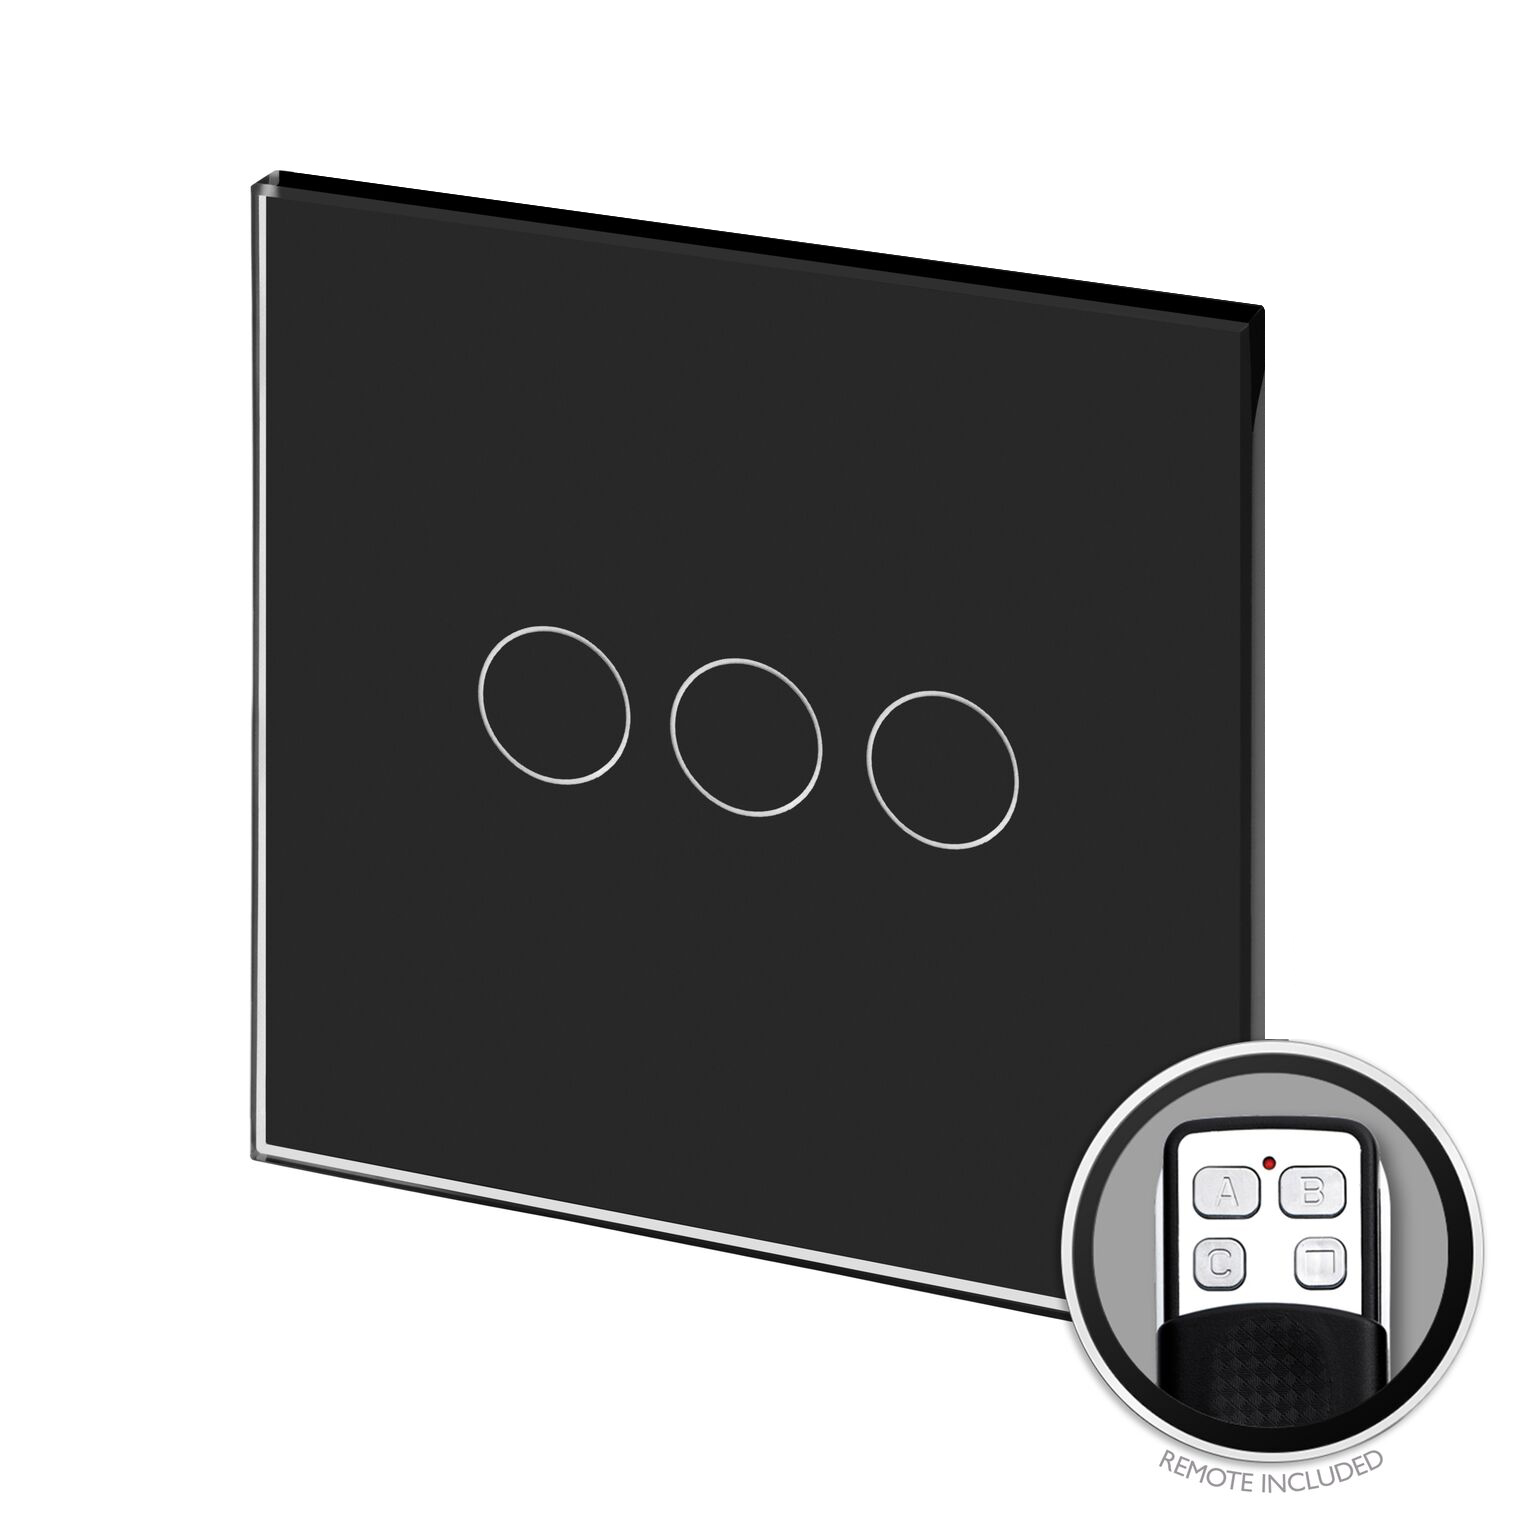 Remote Light Switches Retrotouch Designer Plug 3 Way Touch Switch Kit Crystal Pg Gang Black